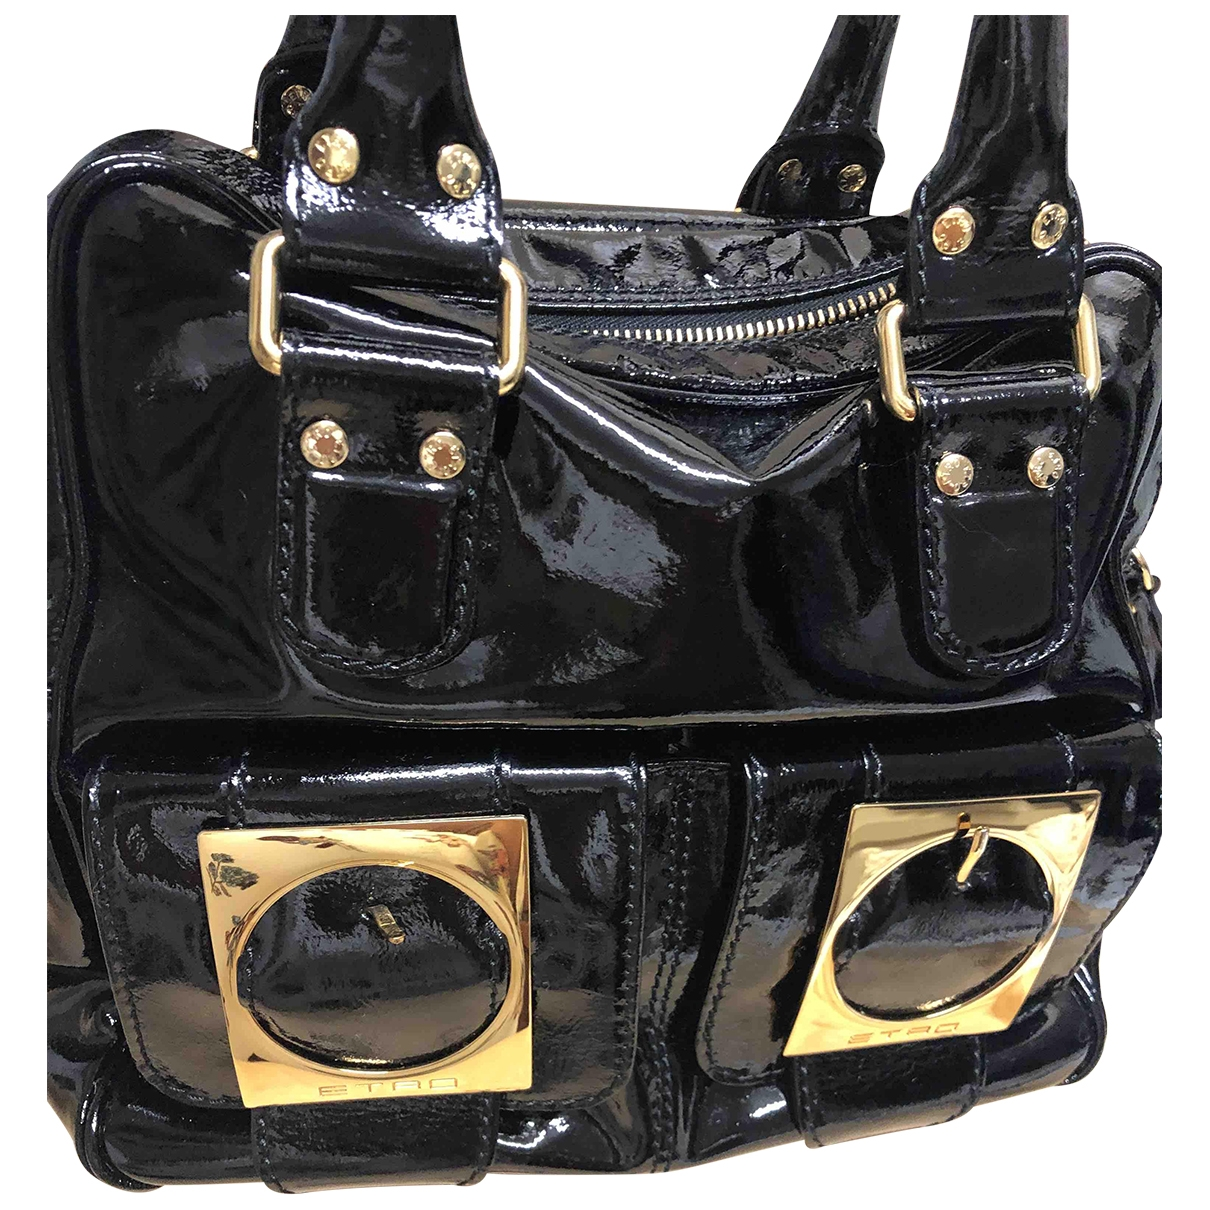 Etro \N Black Patent leather handbag for Women \N